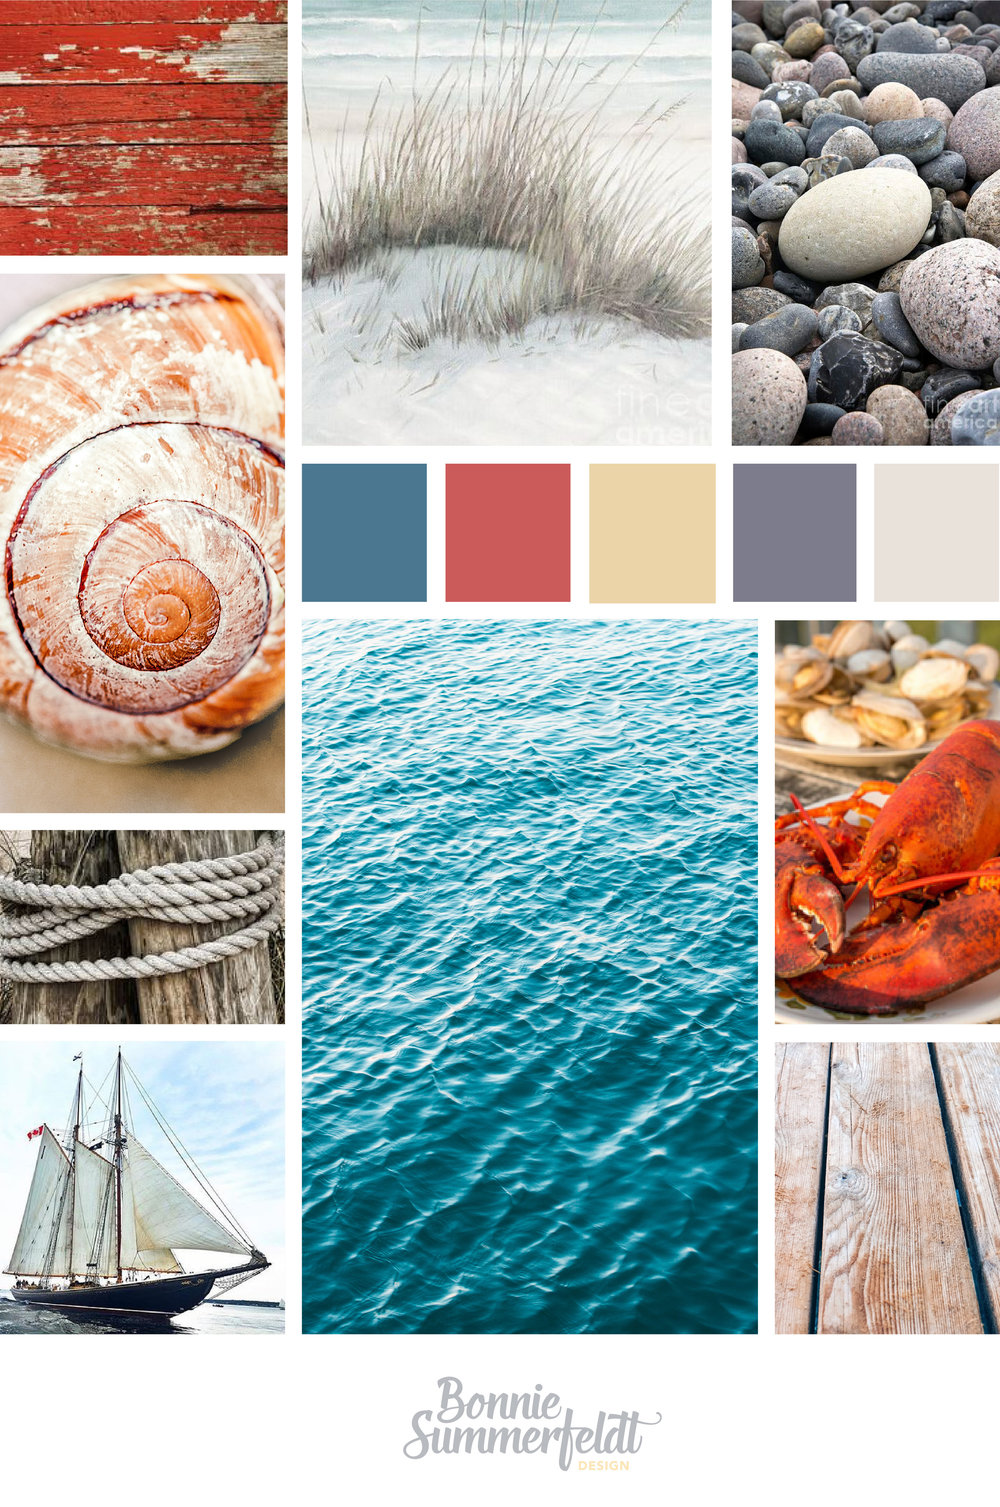 Mood boards are so fun! Especially ones for Nova Scotia lighthouse museums. Here's the look and feel for the Fort Point Museum brand and website.